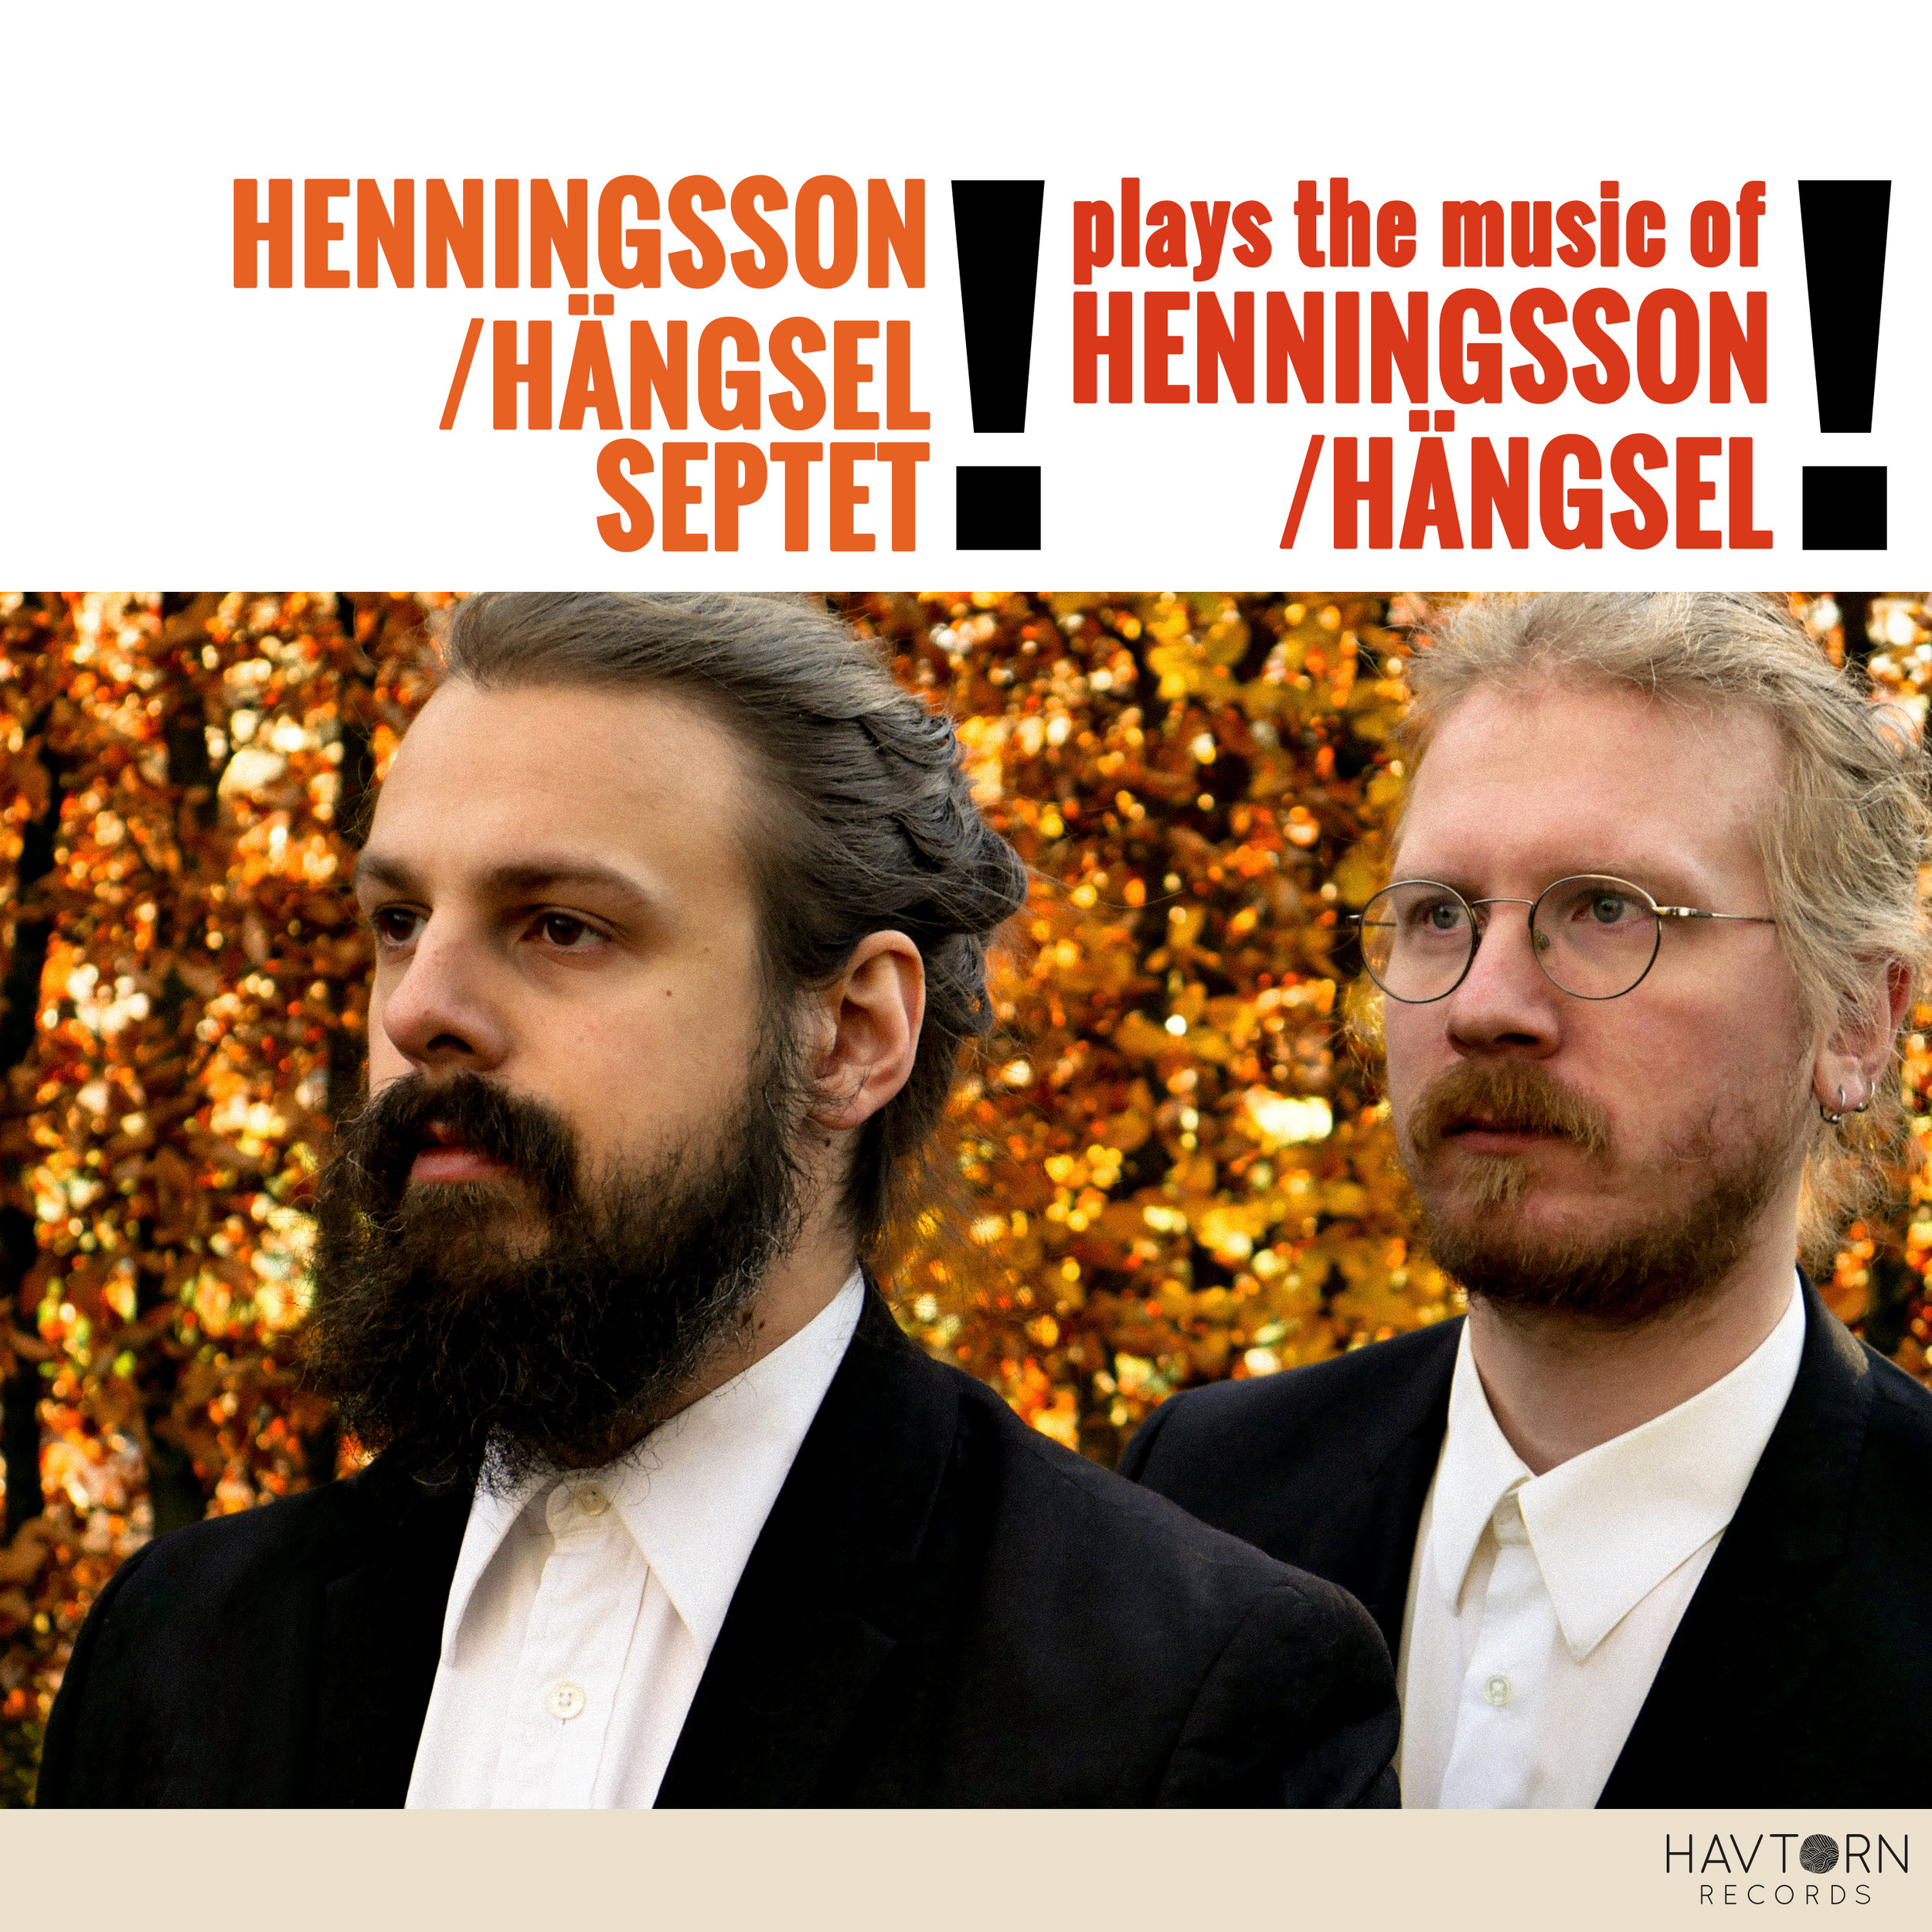 Henningsson/Hängsel Septet - Plays the music of Henningsson/Hängsel